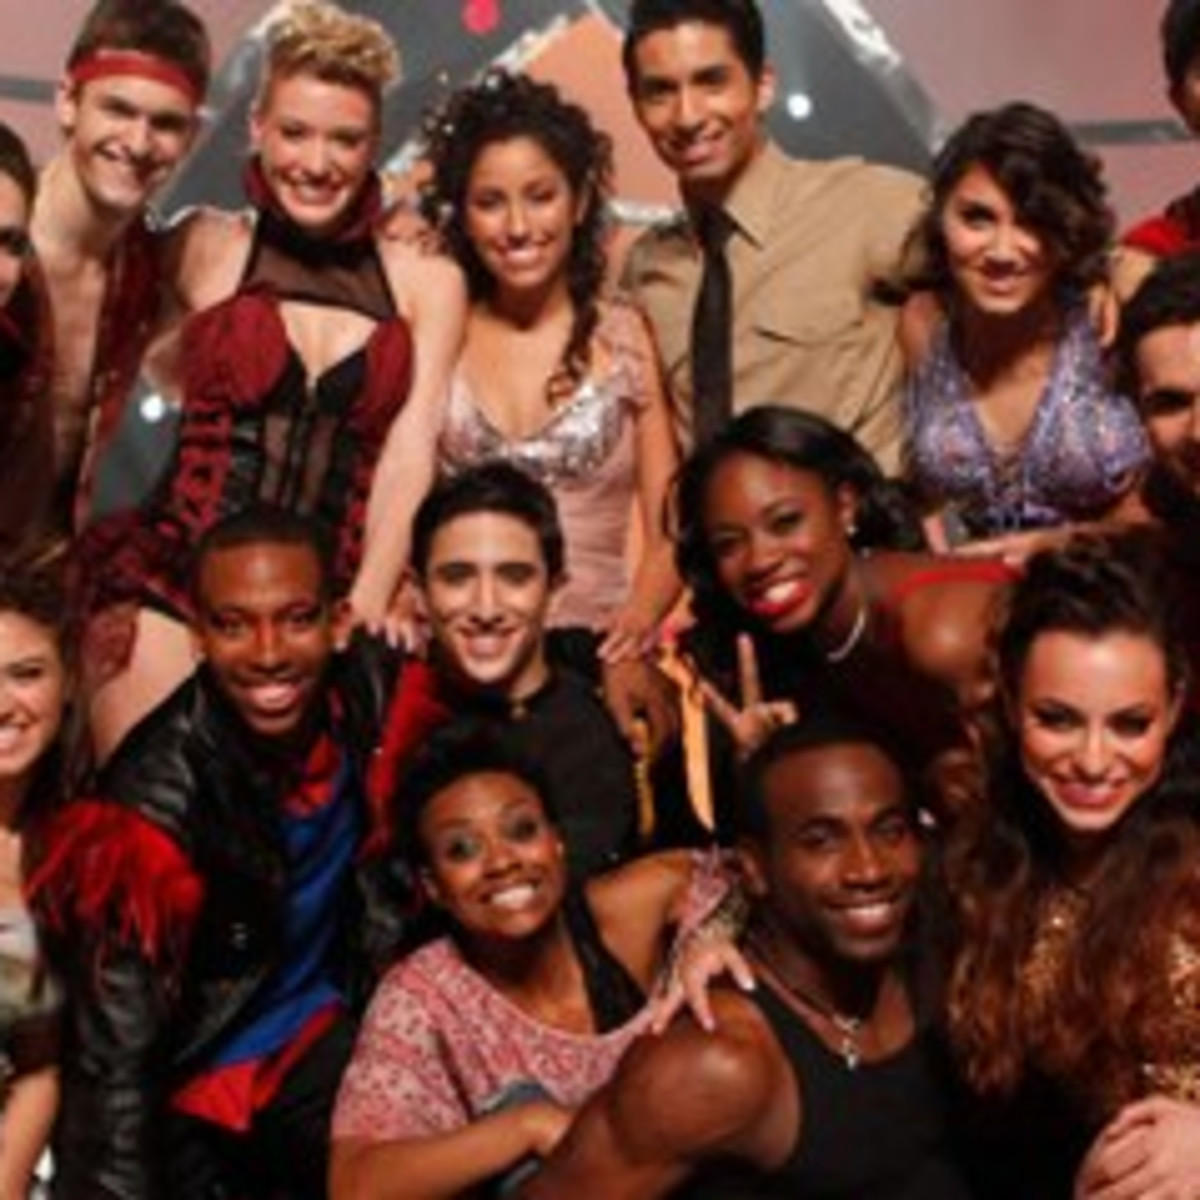 Austin photo: News_So You Think You Can Dance_Cast_8/8